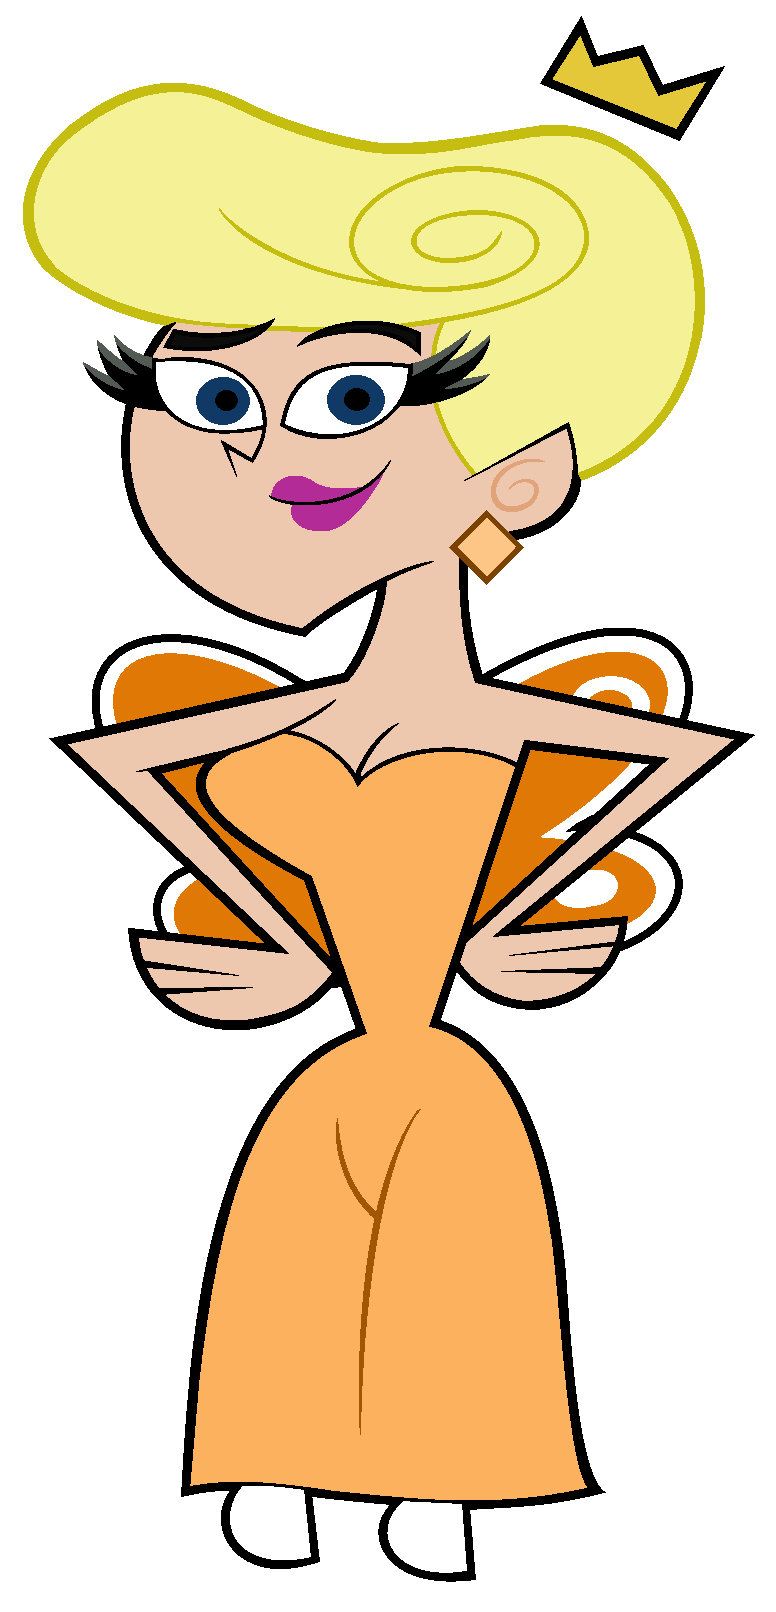 Mrs. Goldenglow (The All New Fairly OddParents!)